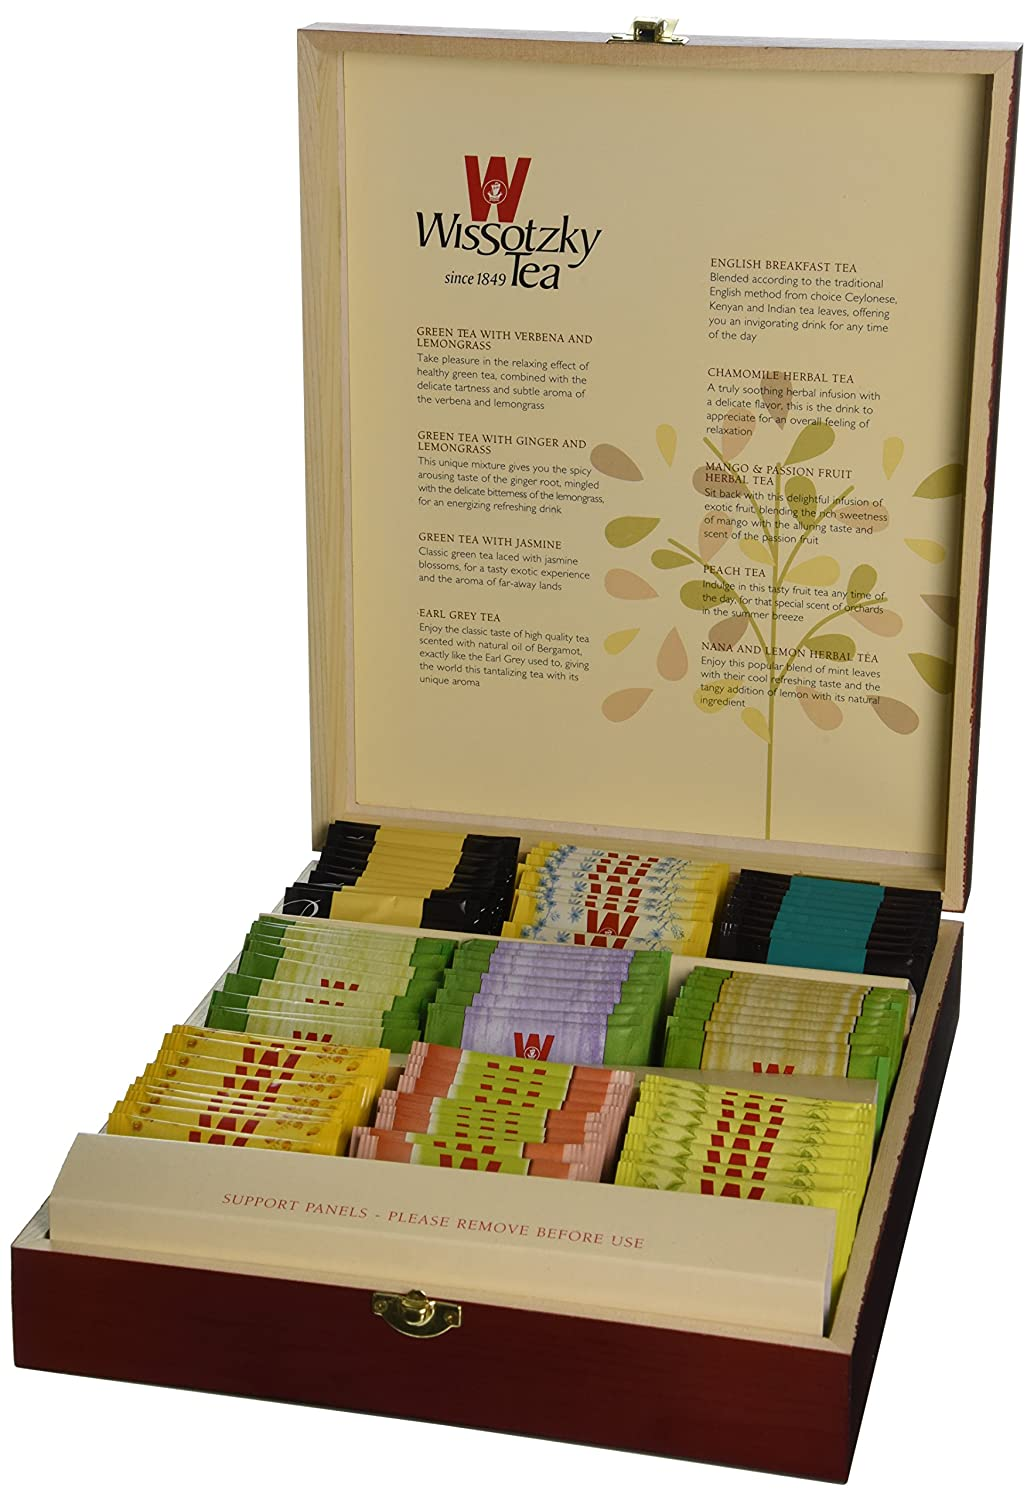 WISSOTZKY Mahogany Tea Chest (9 Flavors), 5.45-Ounce Boxes